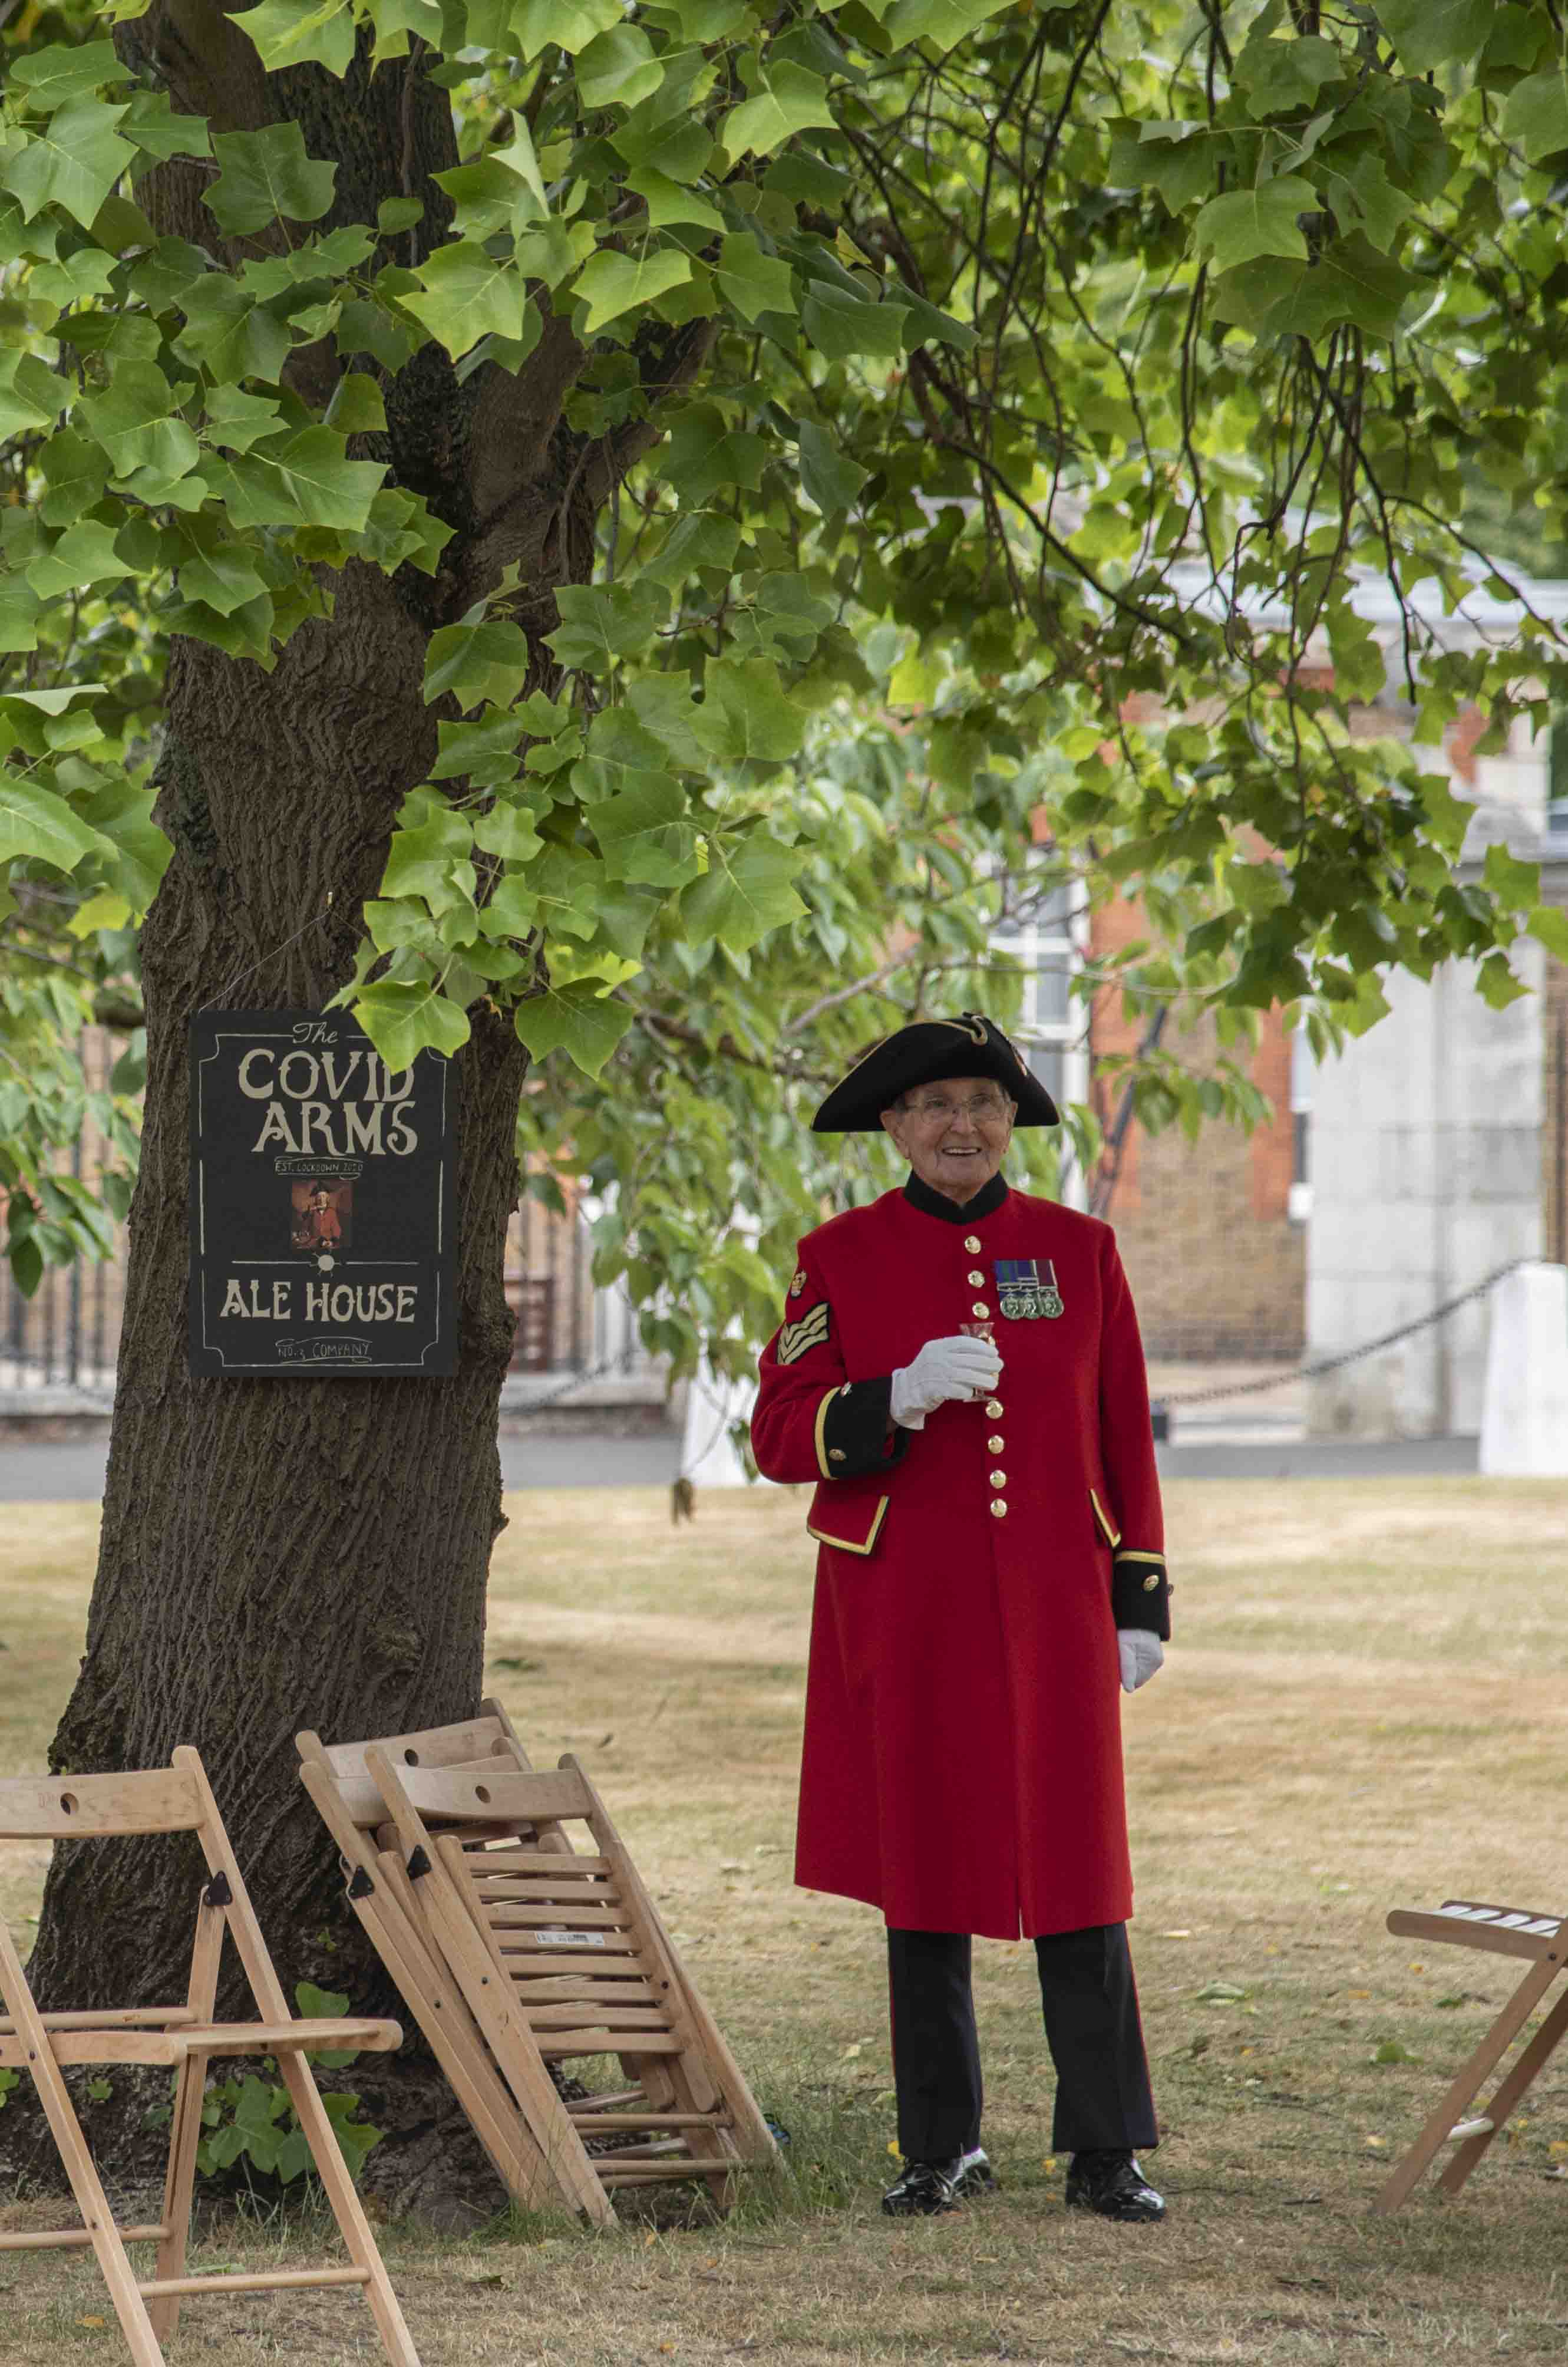 A Pensioner enjoying a drink following the Founder's Day Parade under a tree with a sign affixed reading 'the COVID Arms'